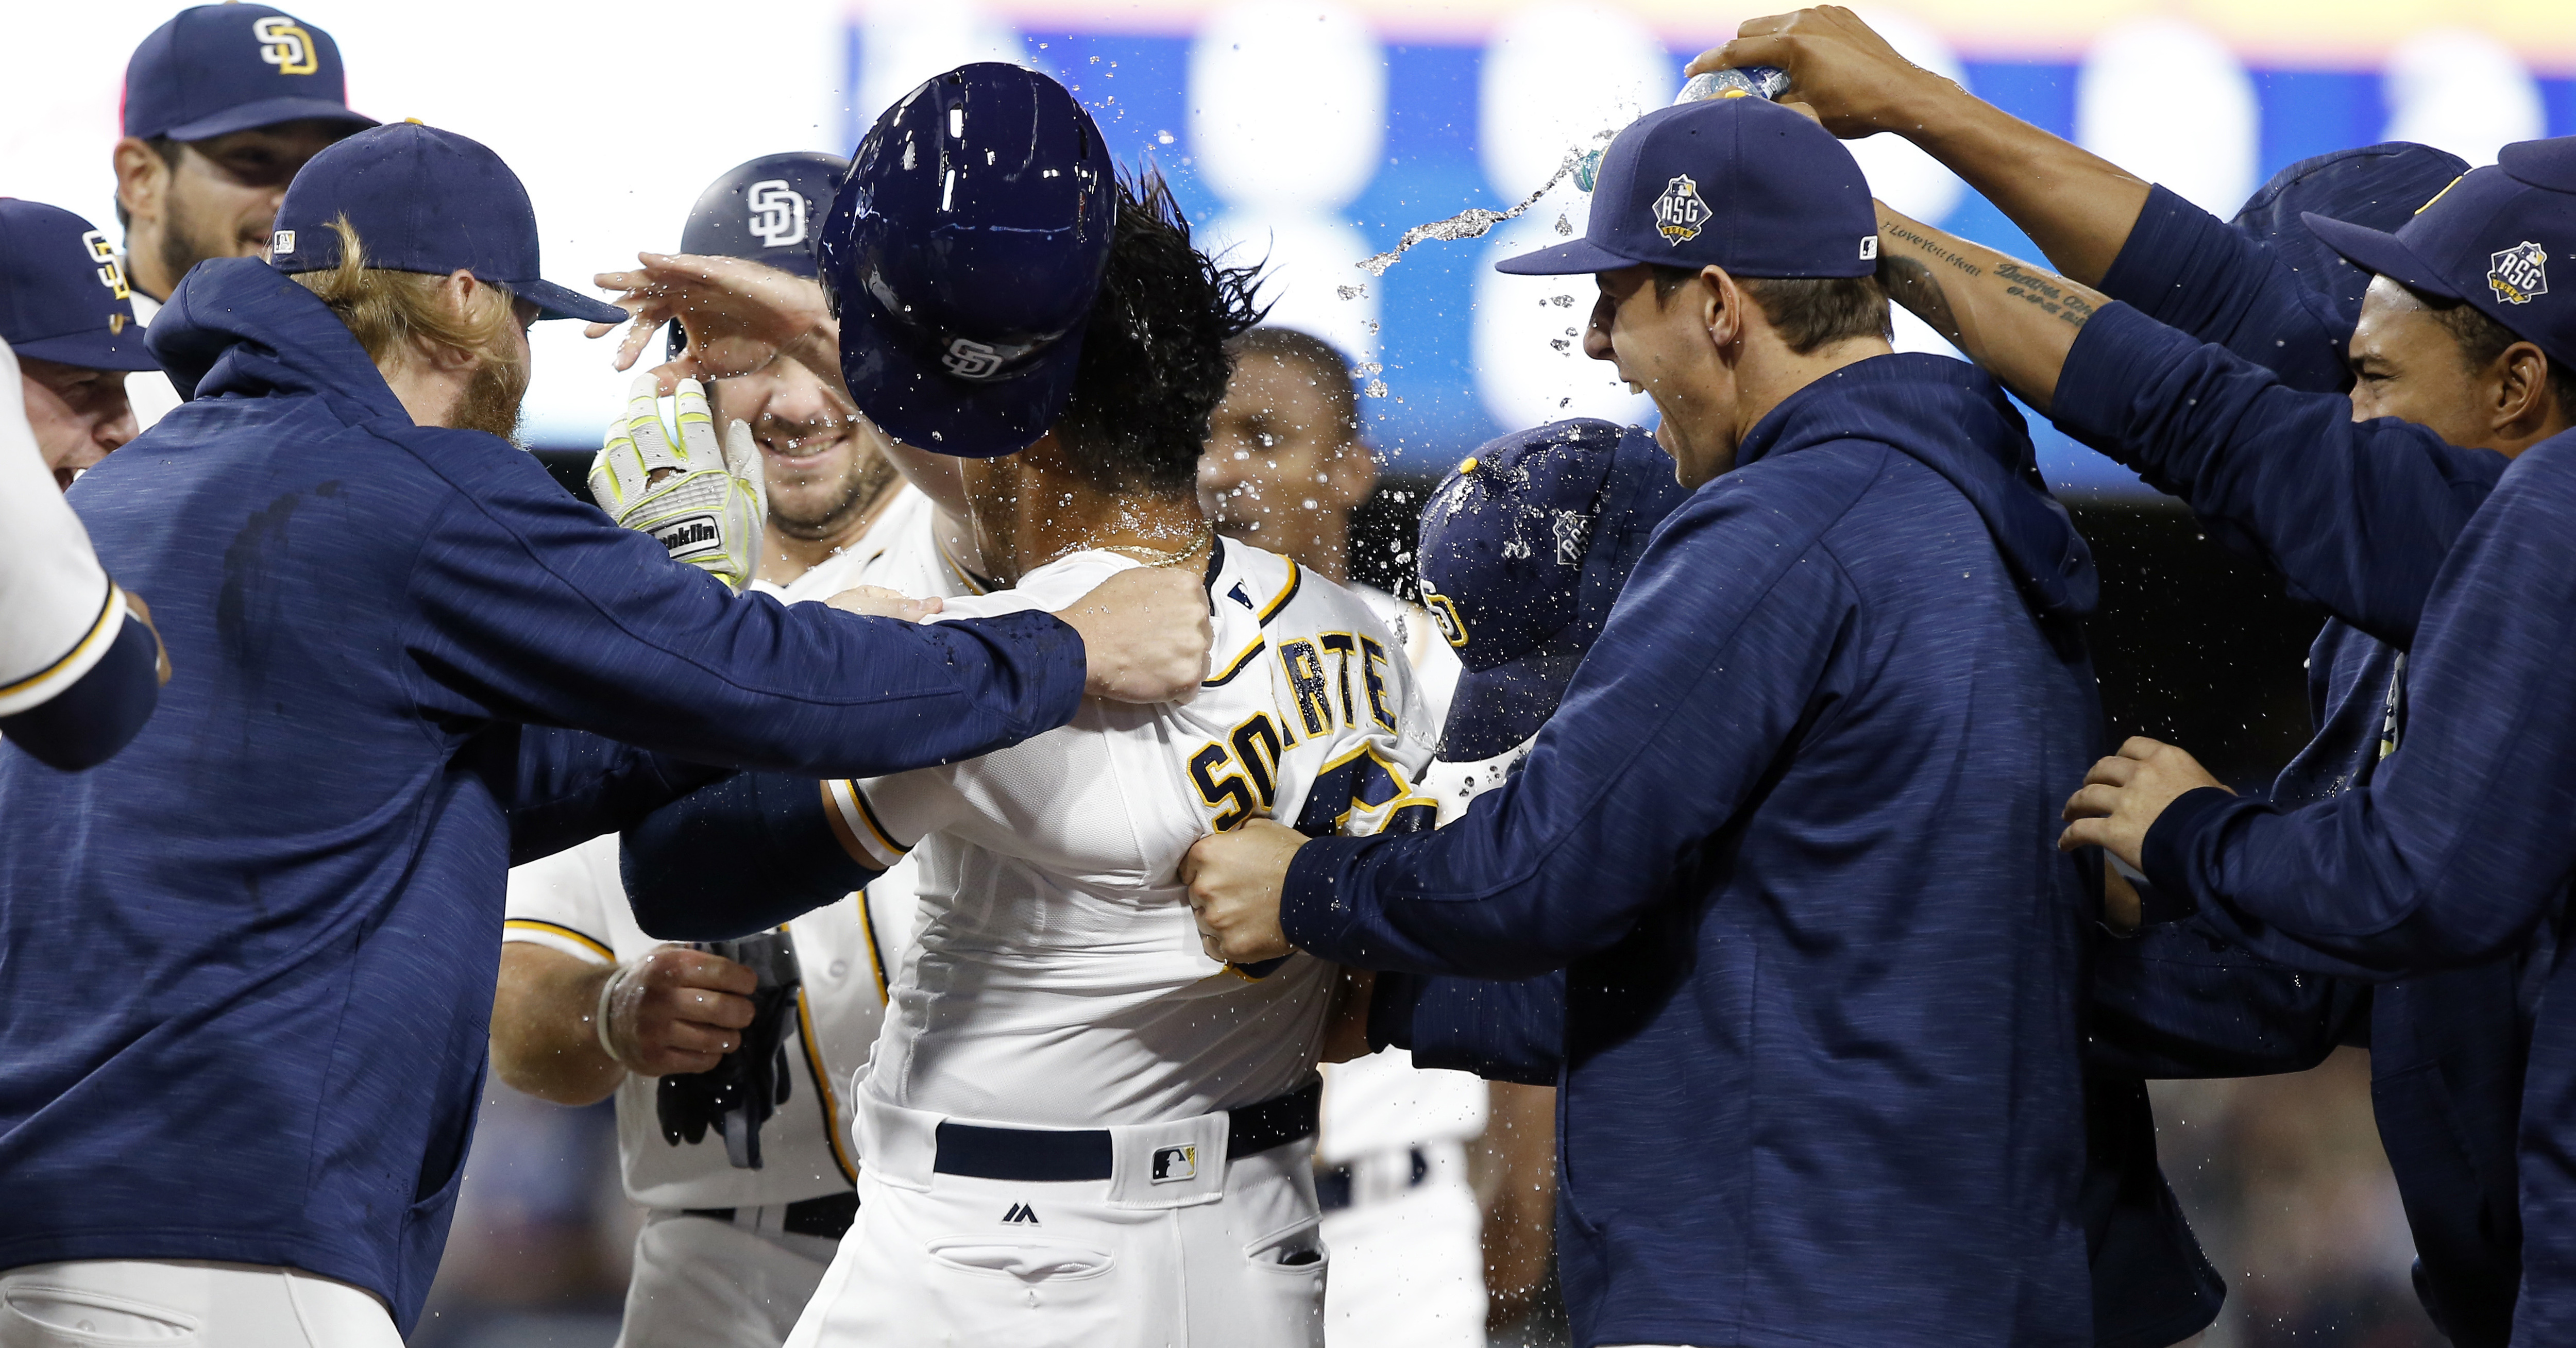 San Diego Padres players celebrate after Yangervis Solarte, center, drew a game winning walk with the bases loaded to score Will Myers to defeat the Los Angeles Dodgers 3-2 in the 11th inning of a baseball game in San Diego, Saturday, May 21, 2016. (AP Ph